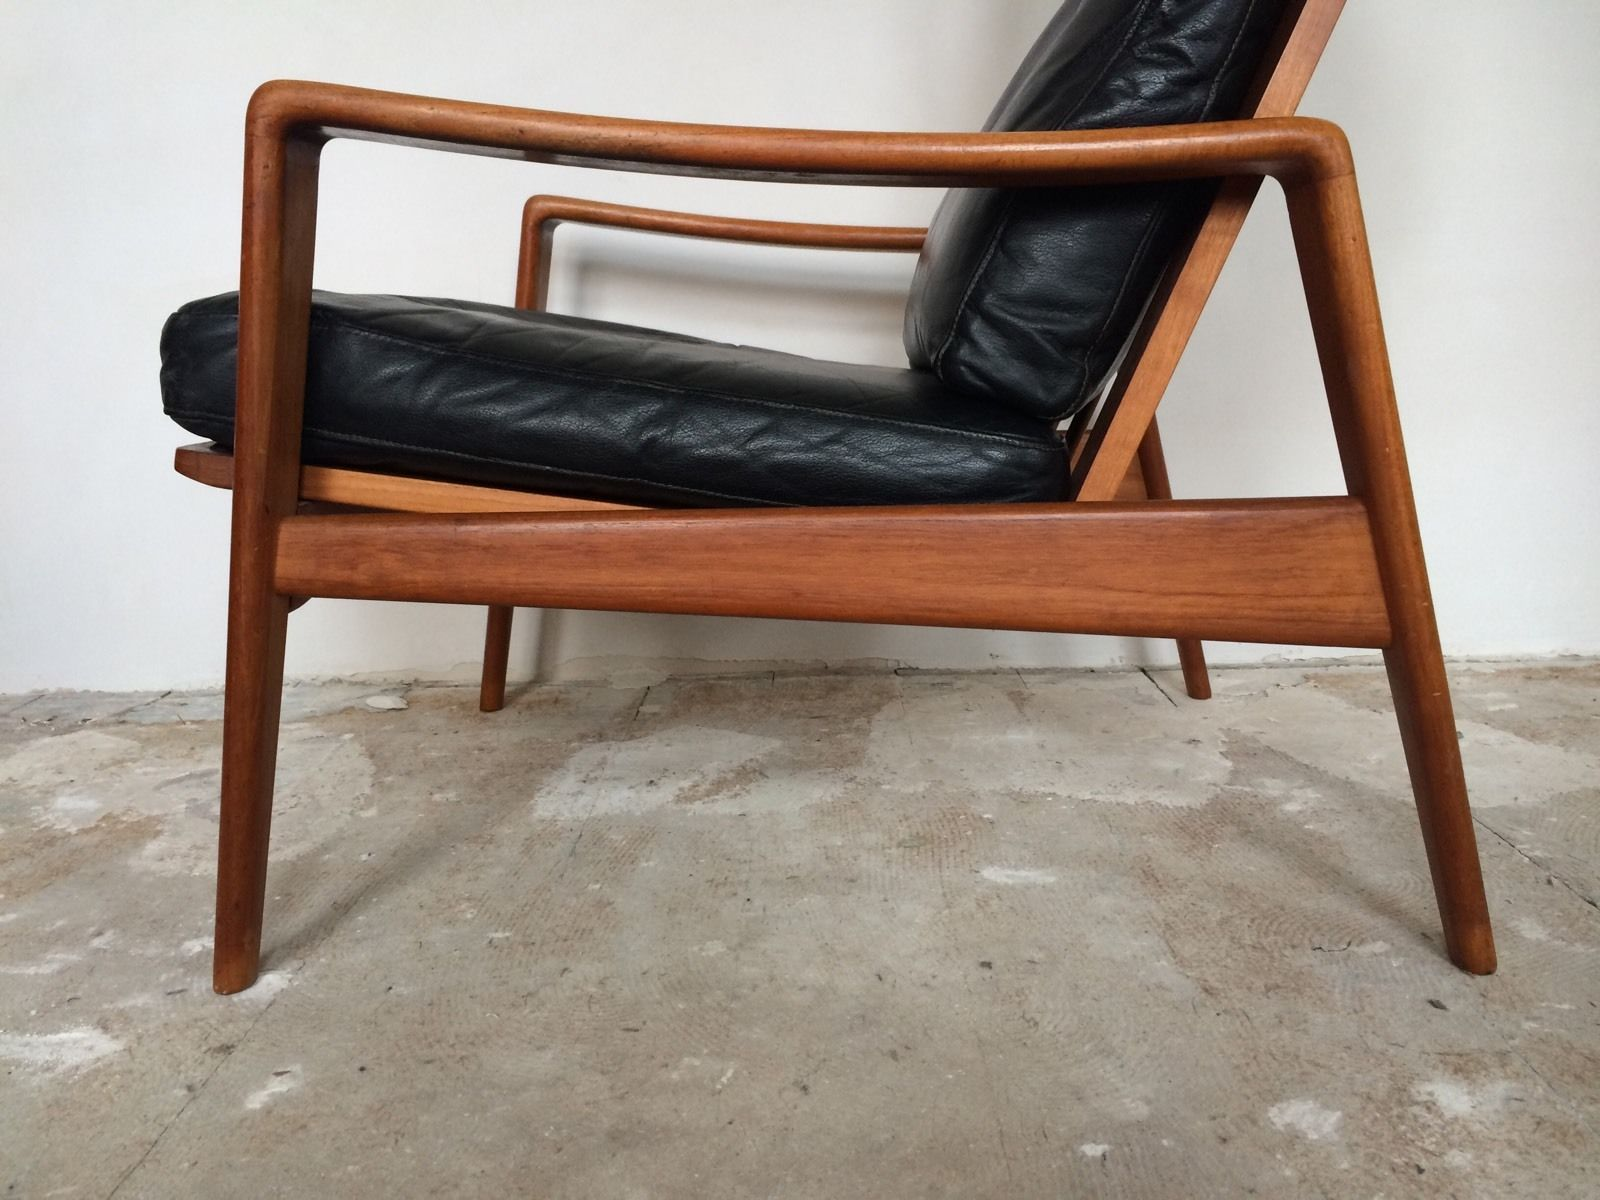 Danish Design Meubels : Arne wahl iversen komfort lounge chair teak 60s danish design leder